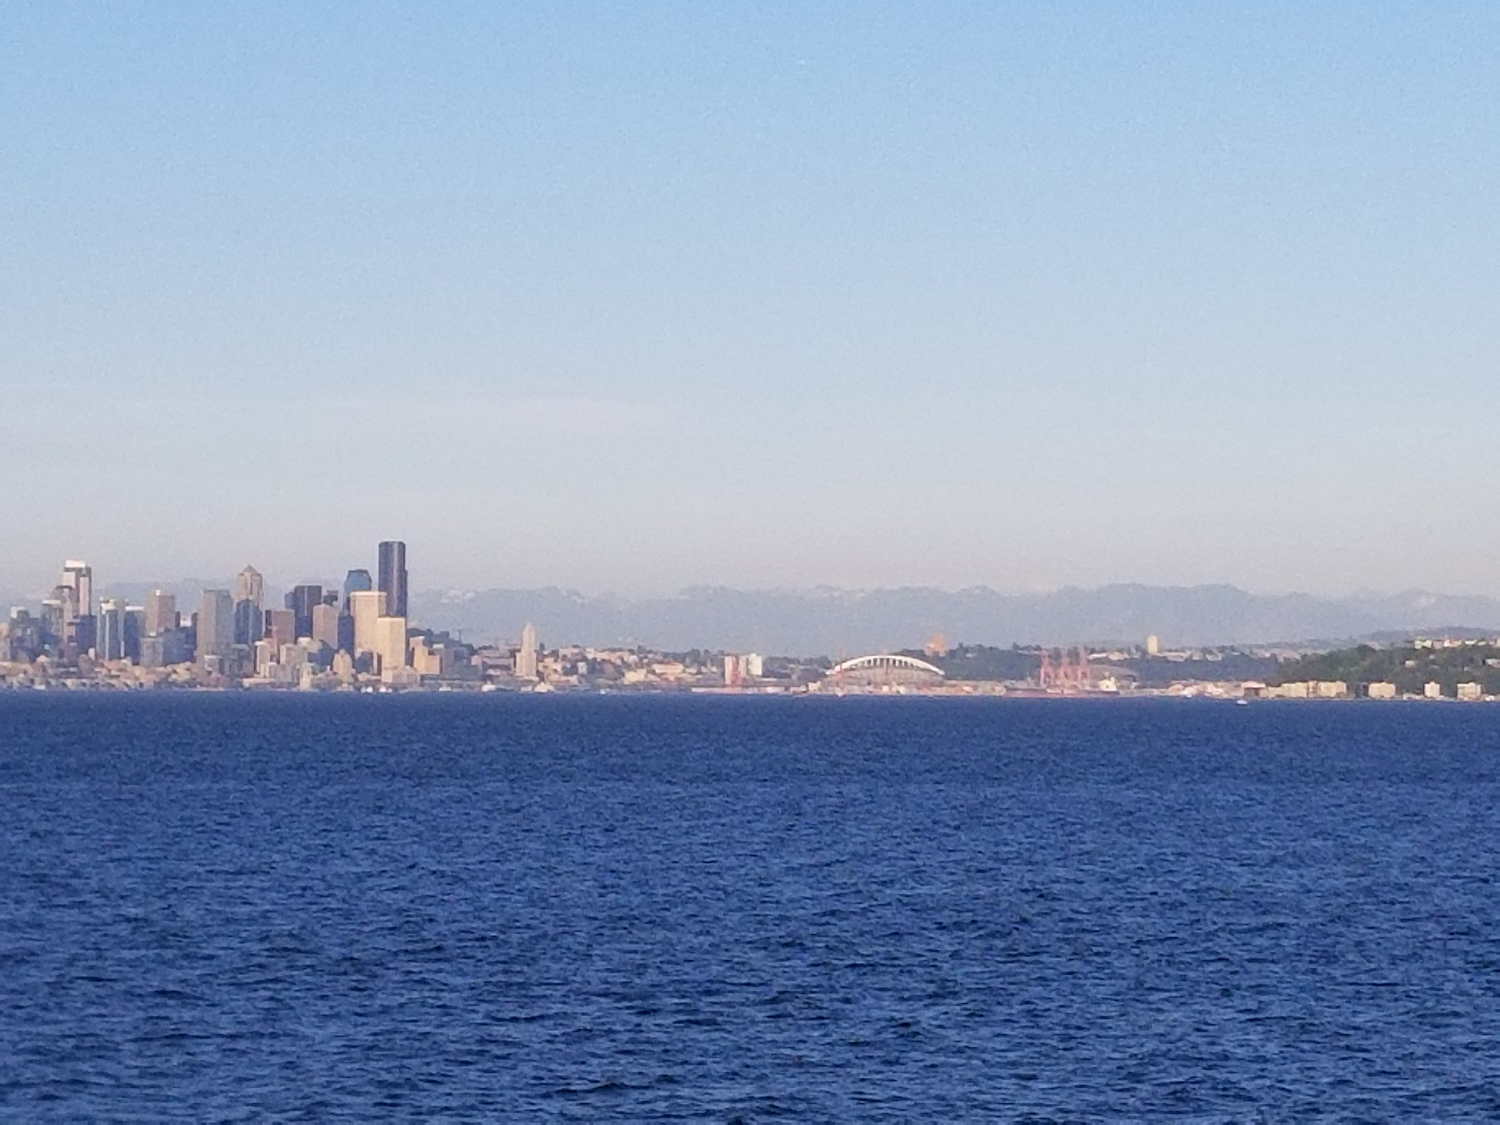 Leaving Seattle on the ferry